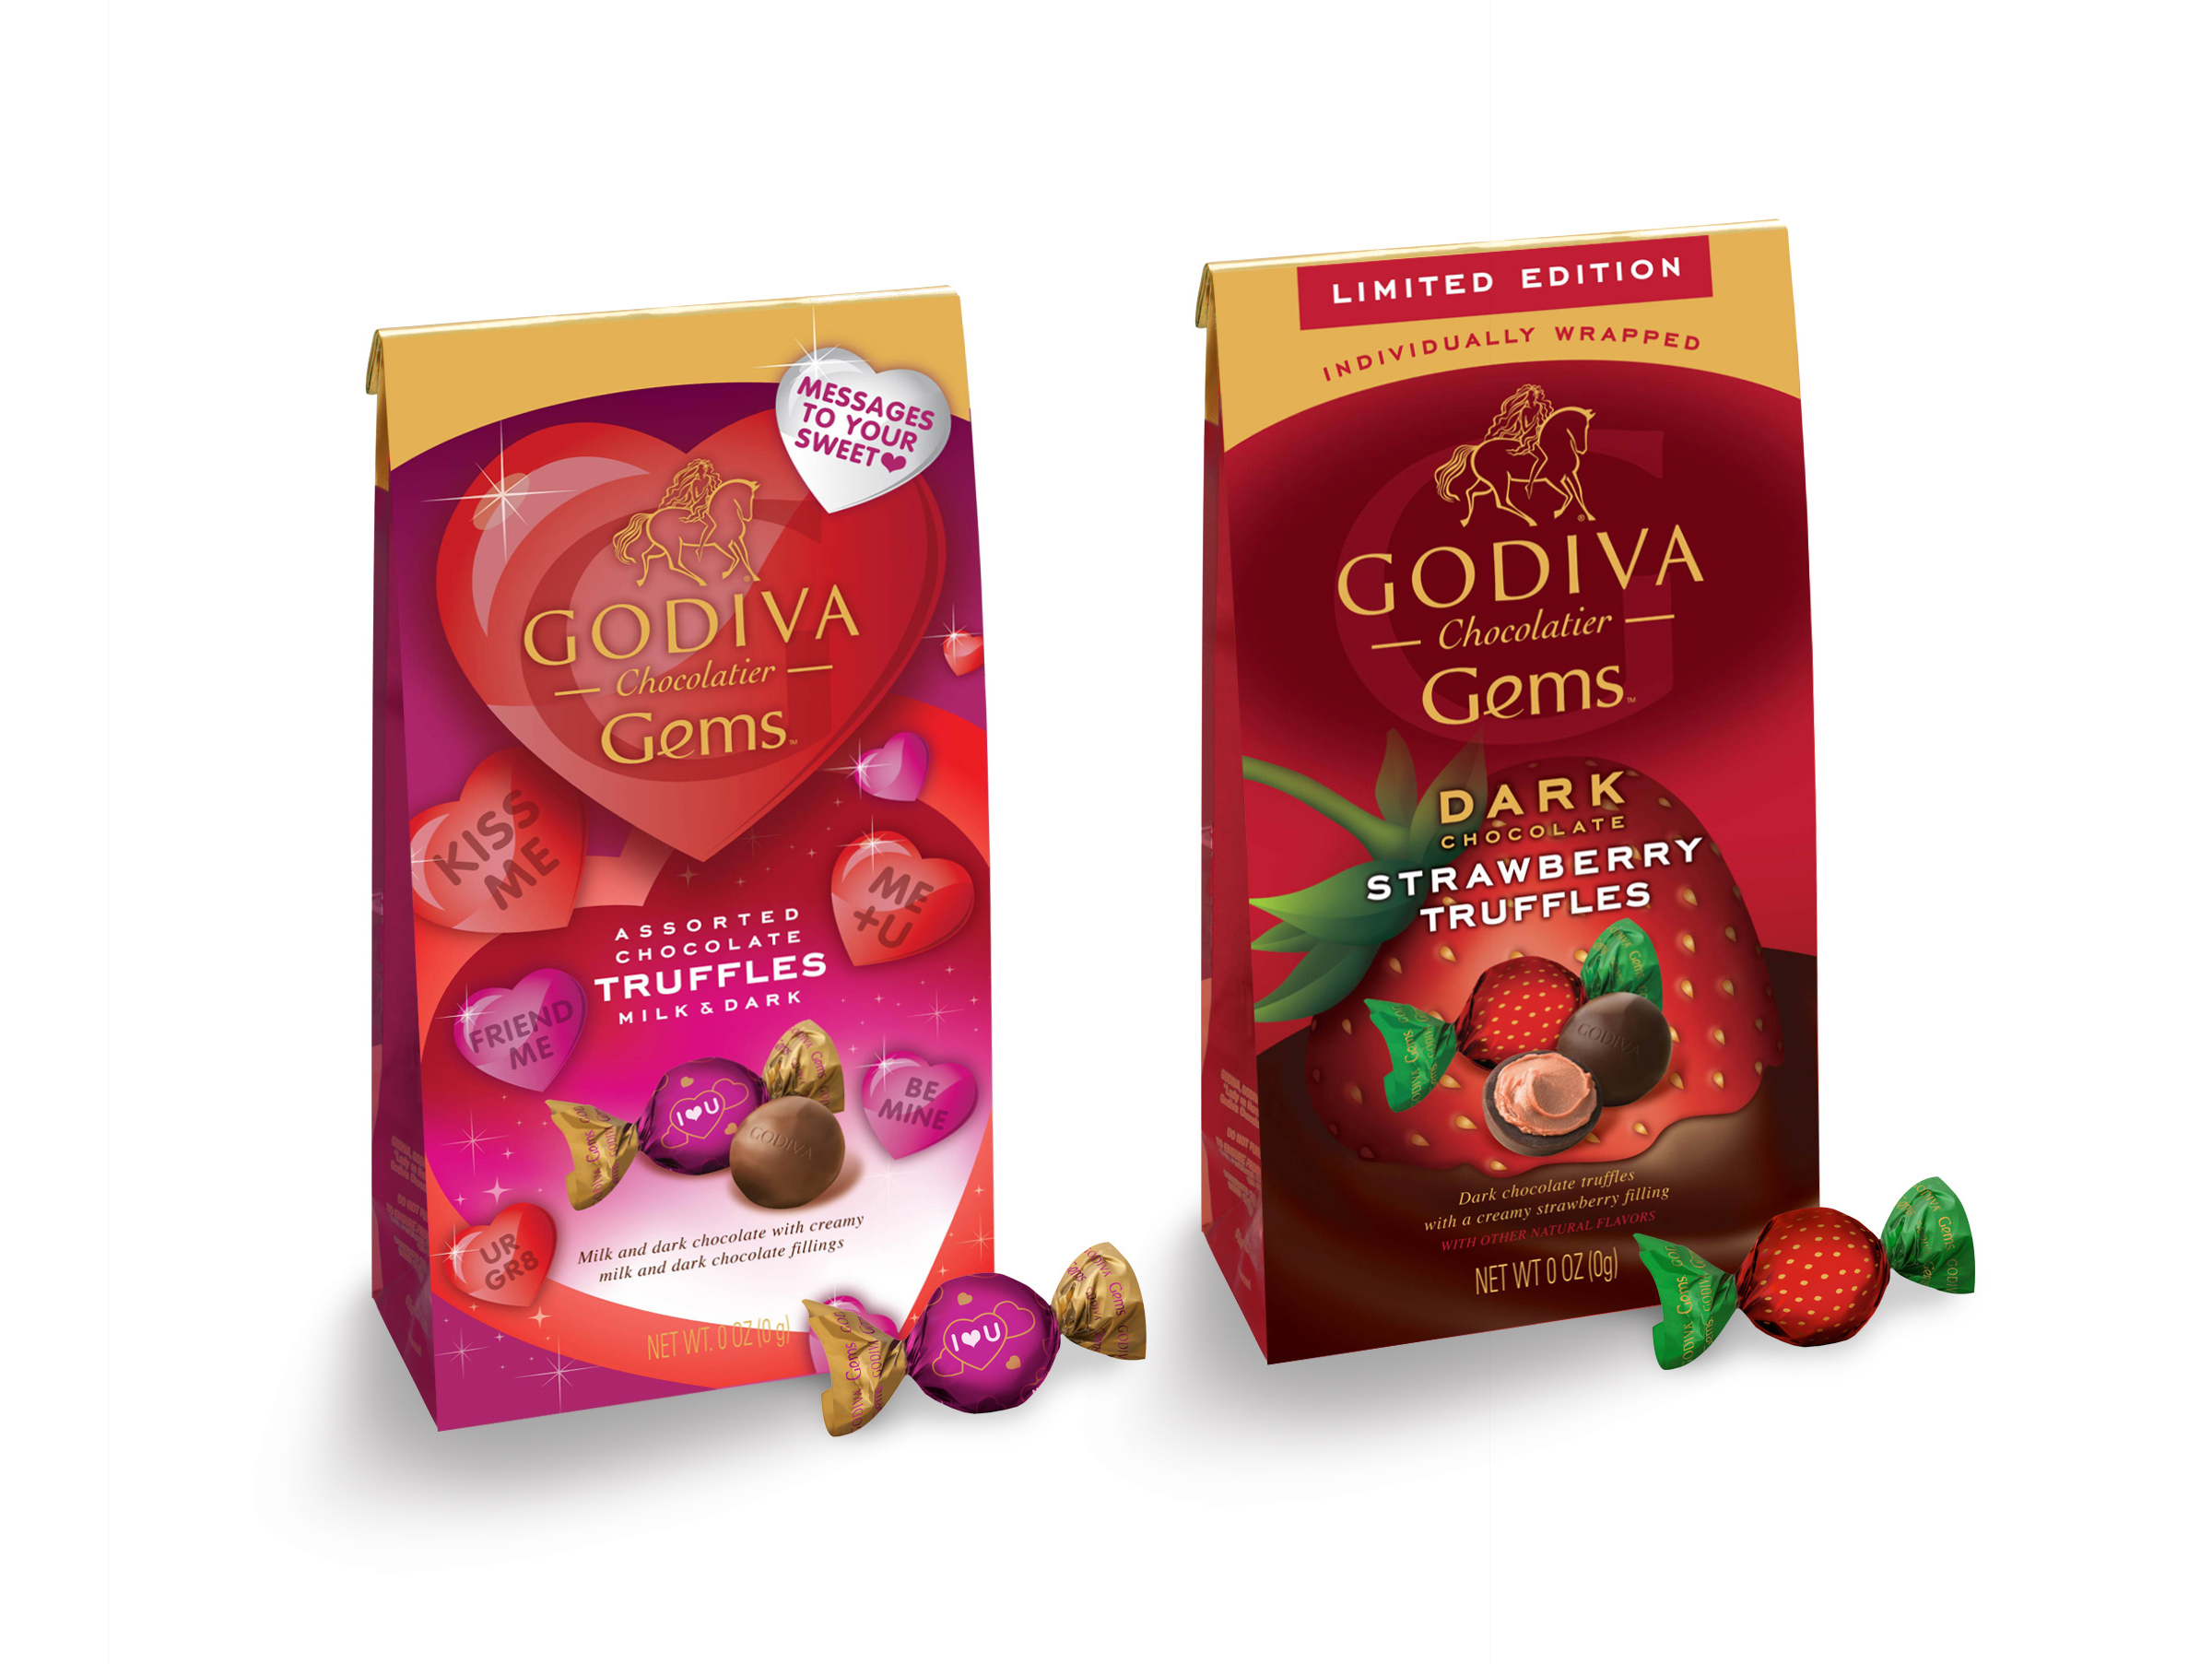 Godiva Gems Package Design - Valentine's Day